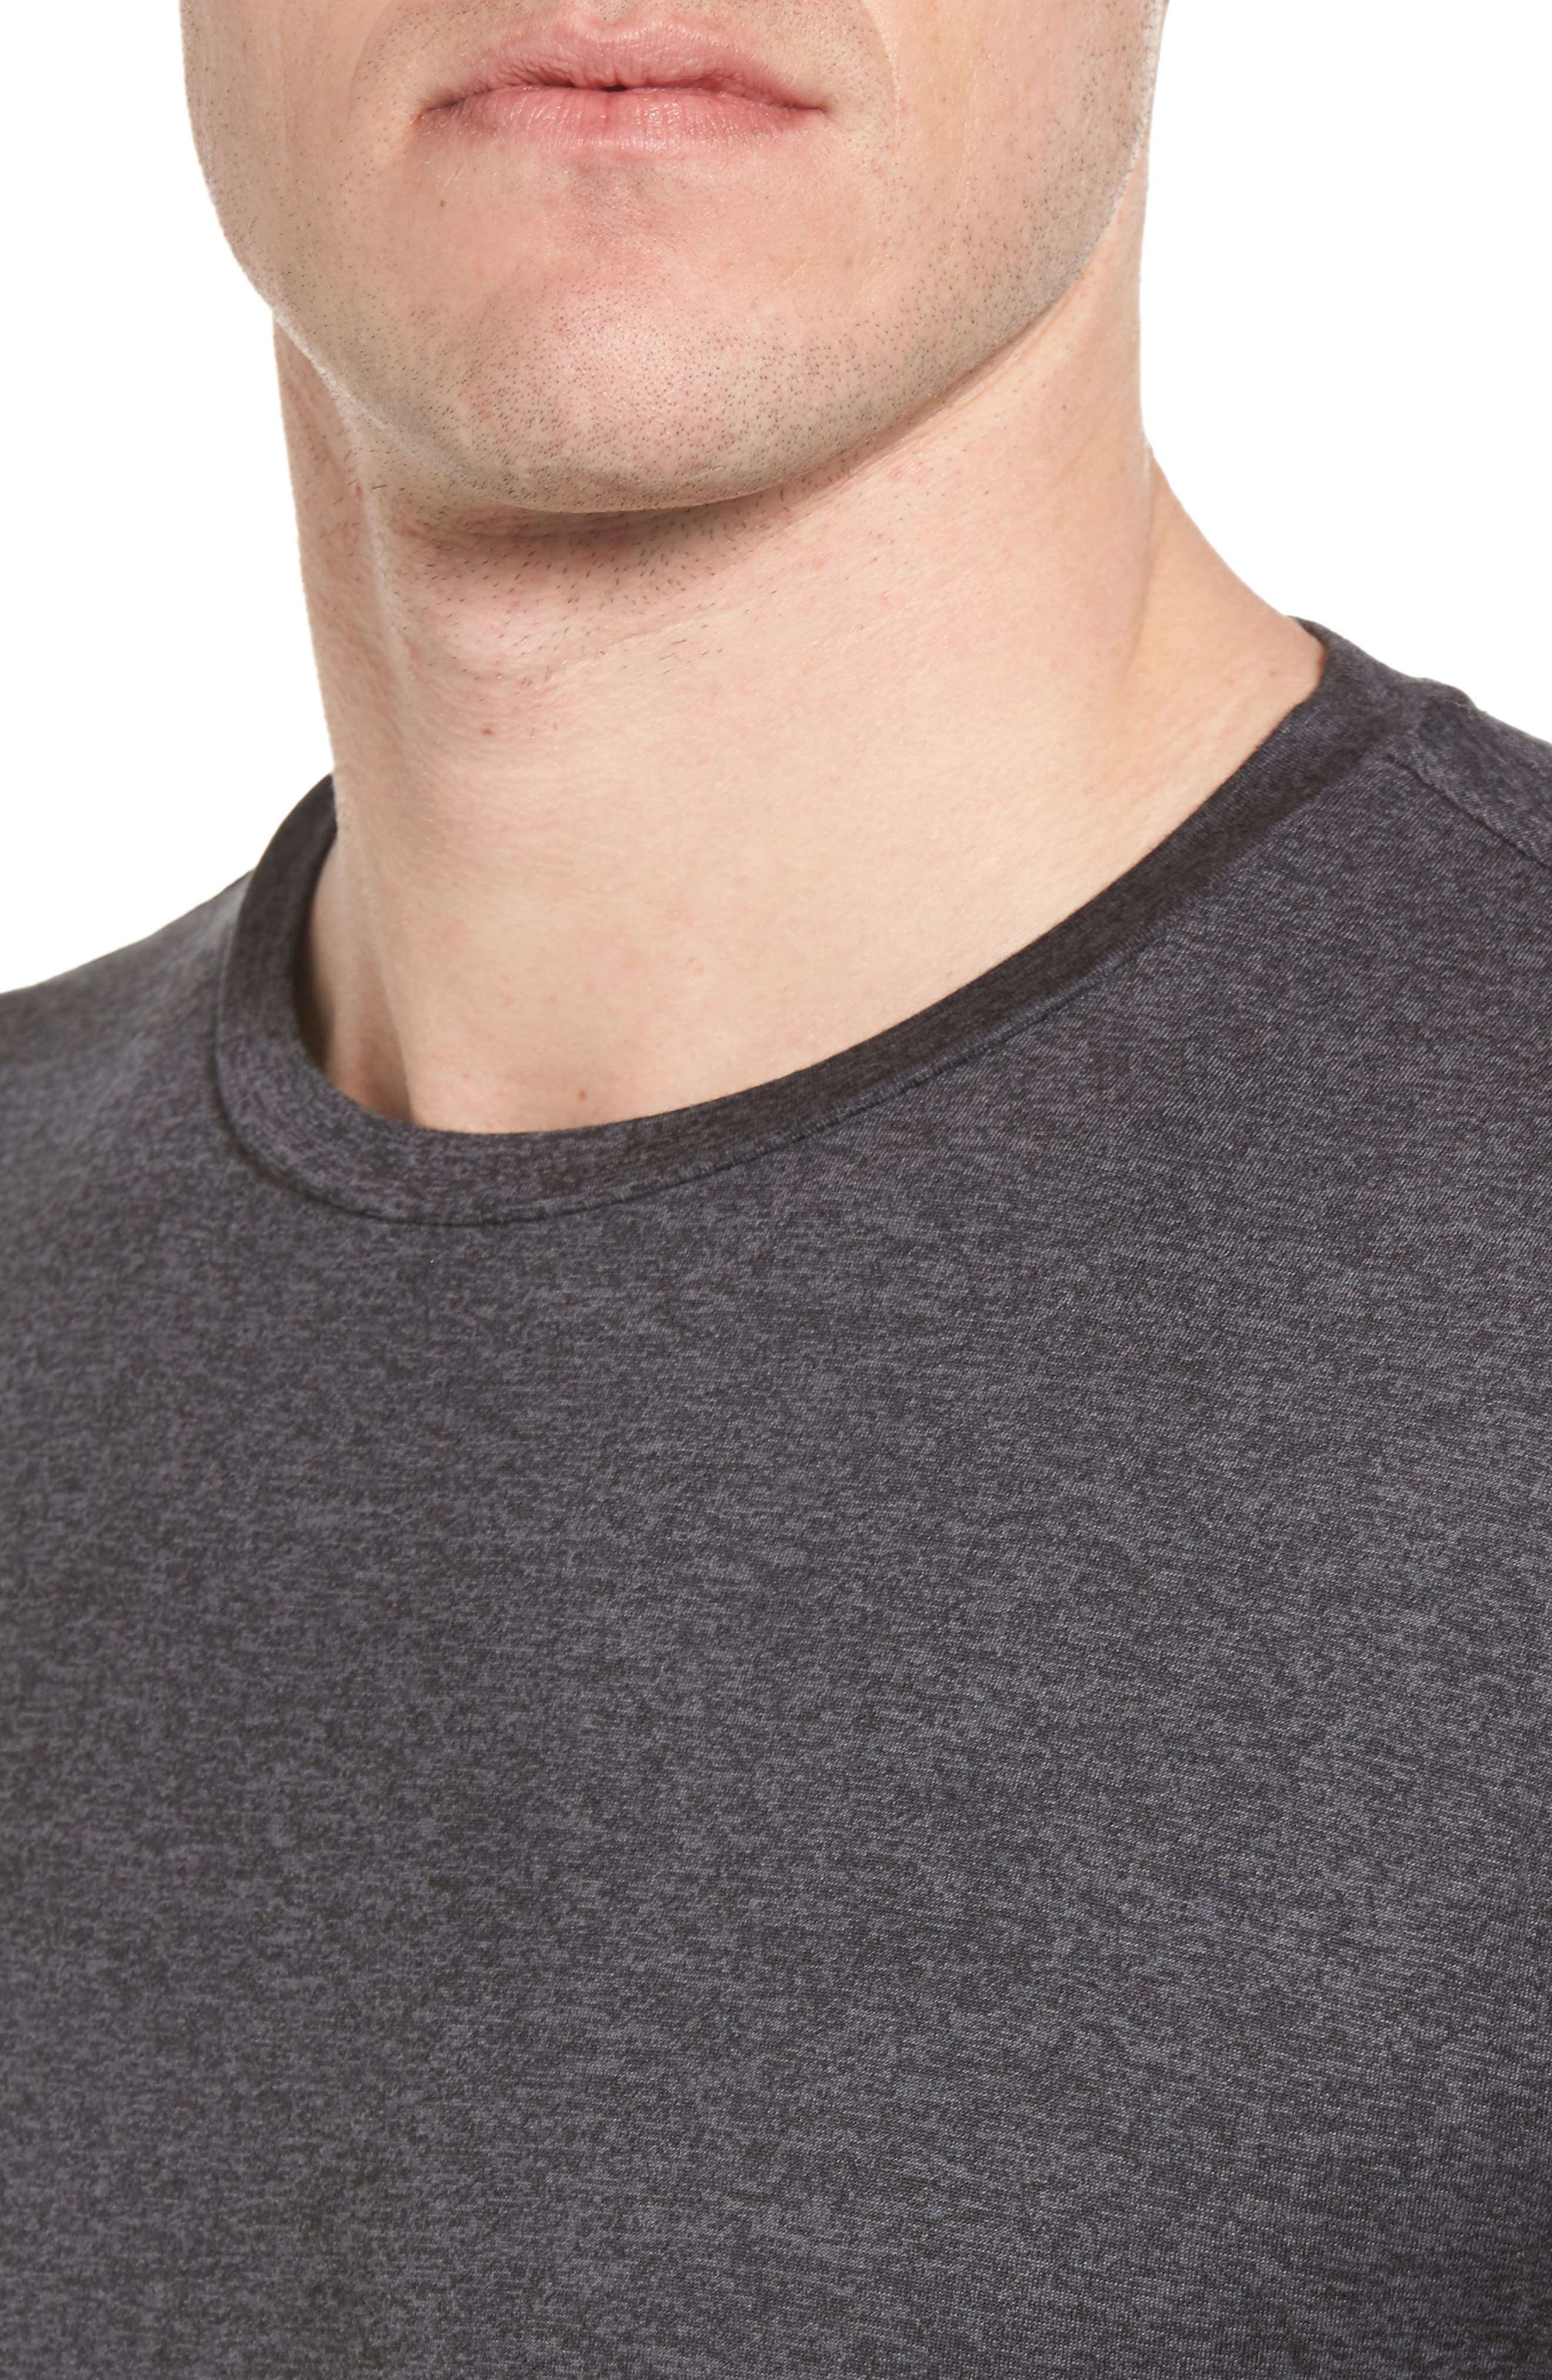 Strato Slim Fit Crewneck T-Shirt,                             Alternate thumbnail 4, color,                             HEATHER CHARCOAL